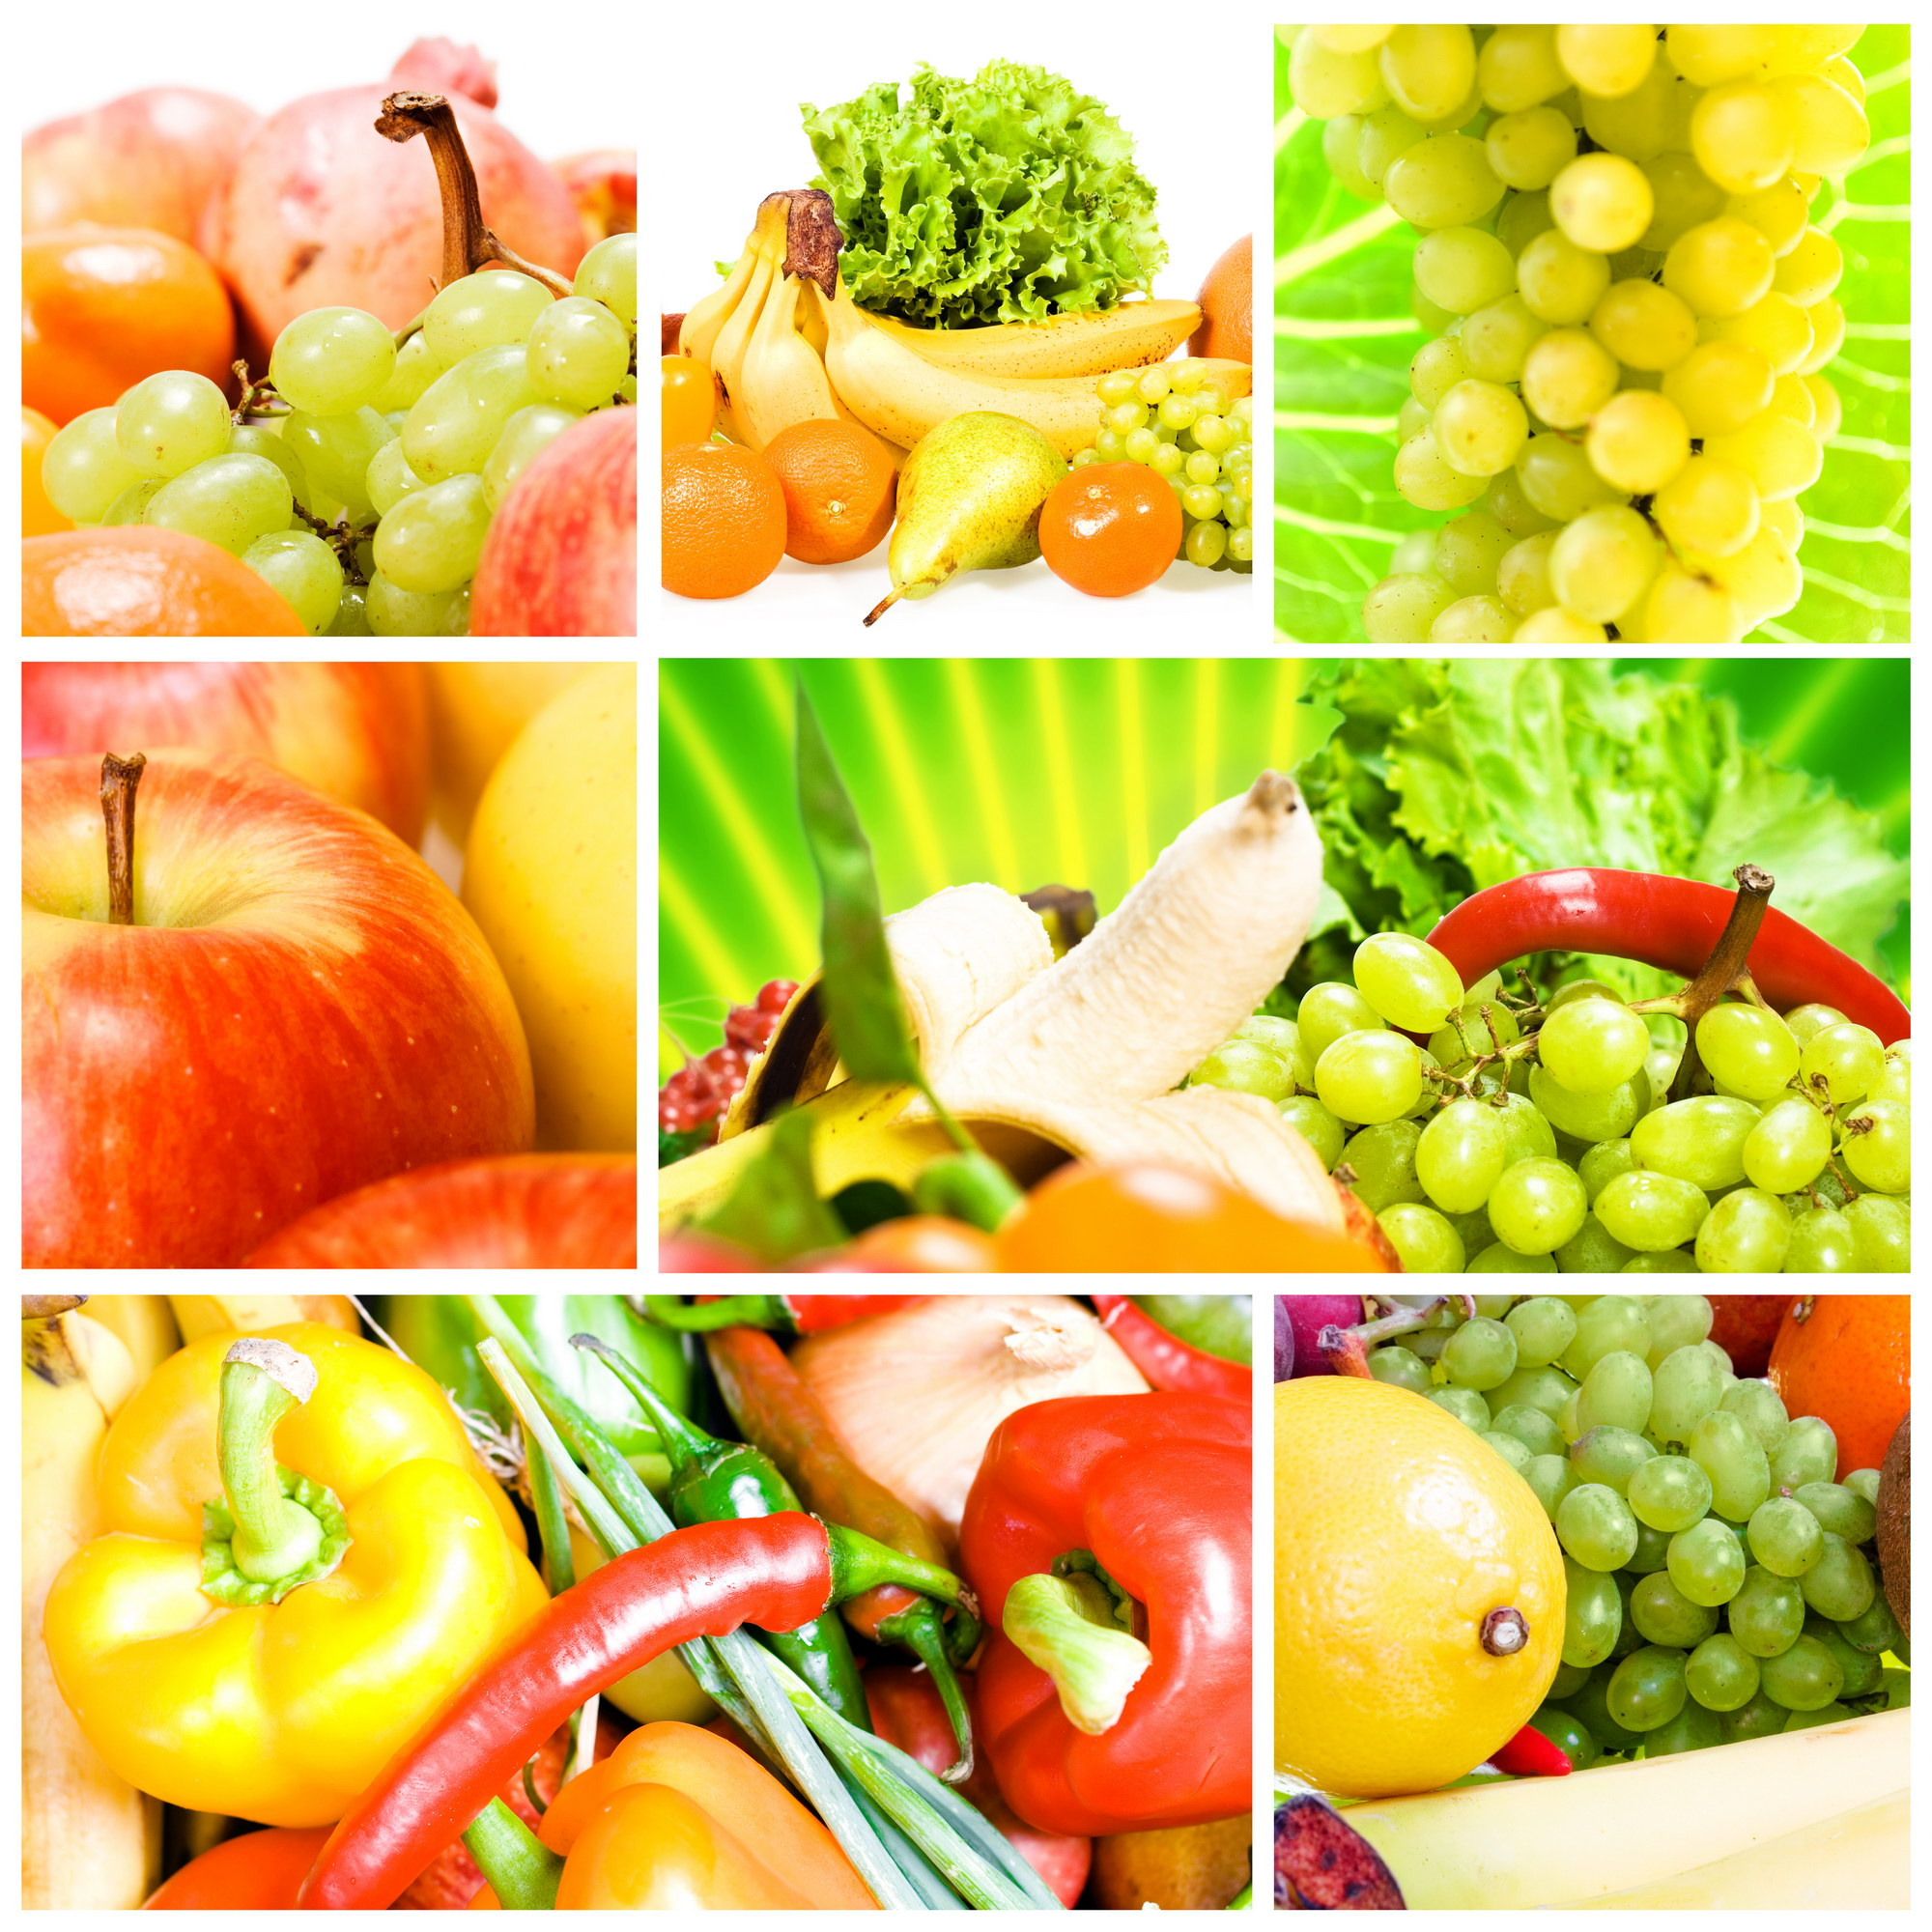 Vegetables & fruits photo